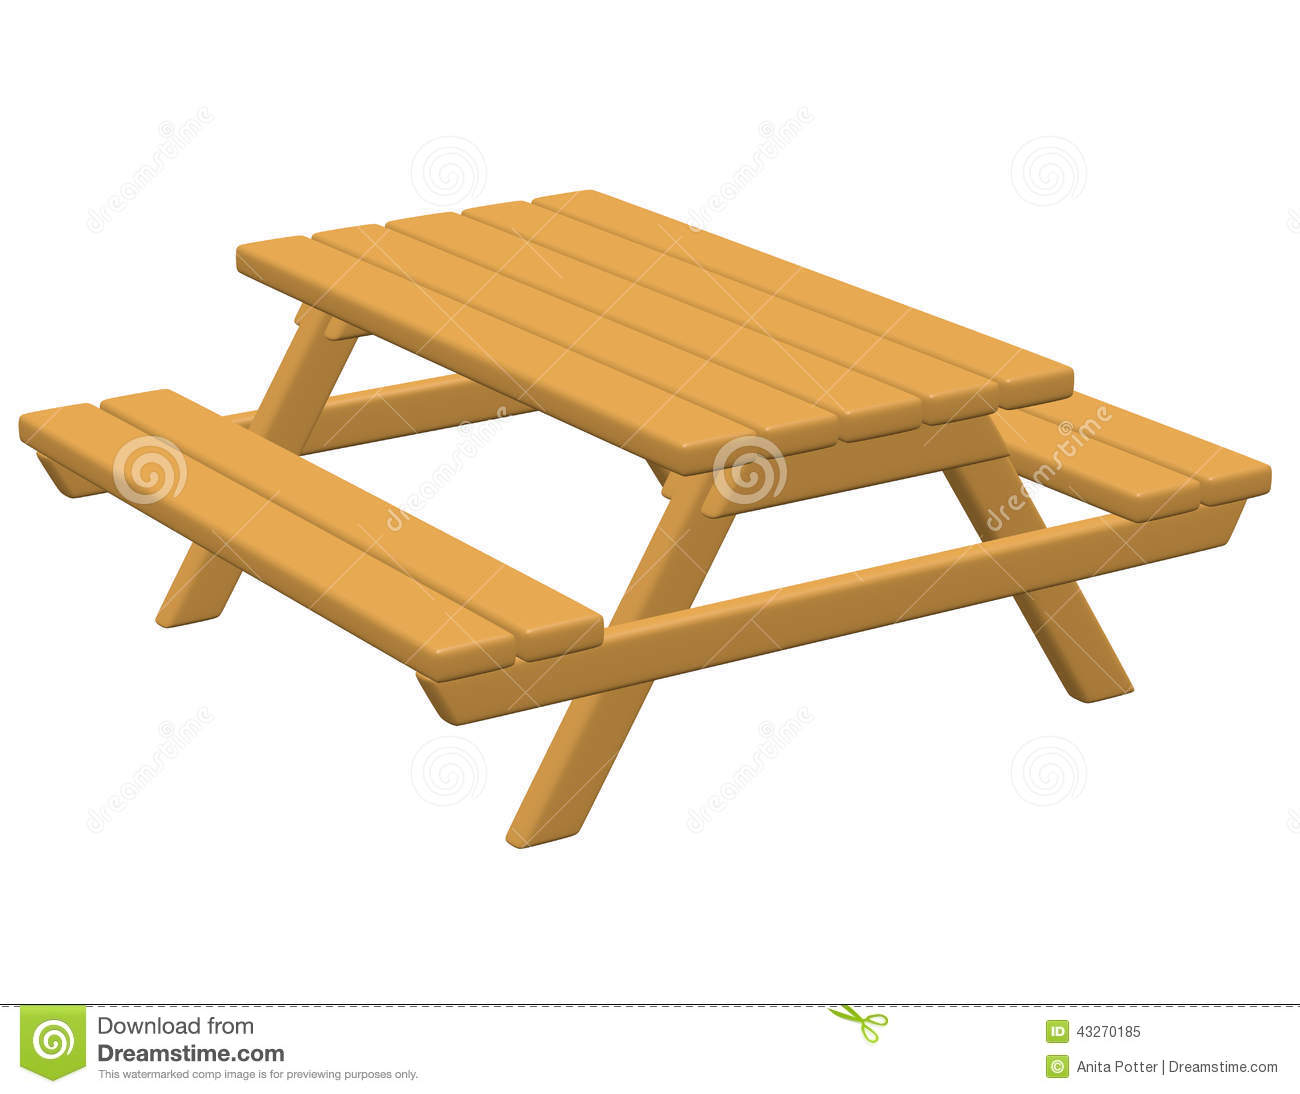 3d Render Of A Picnic Table Stock Illustration - Image ...